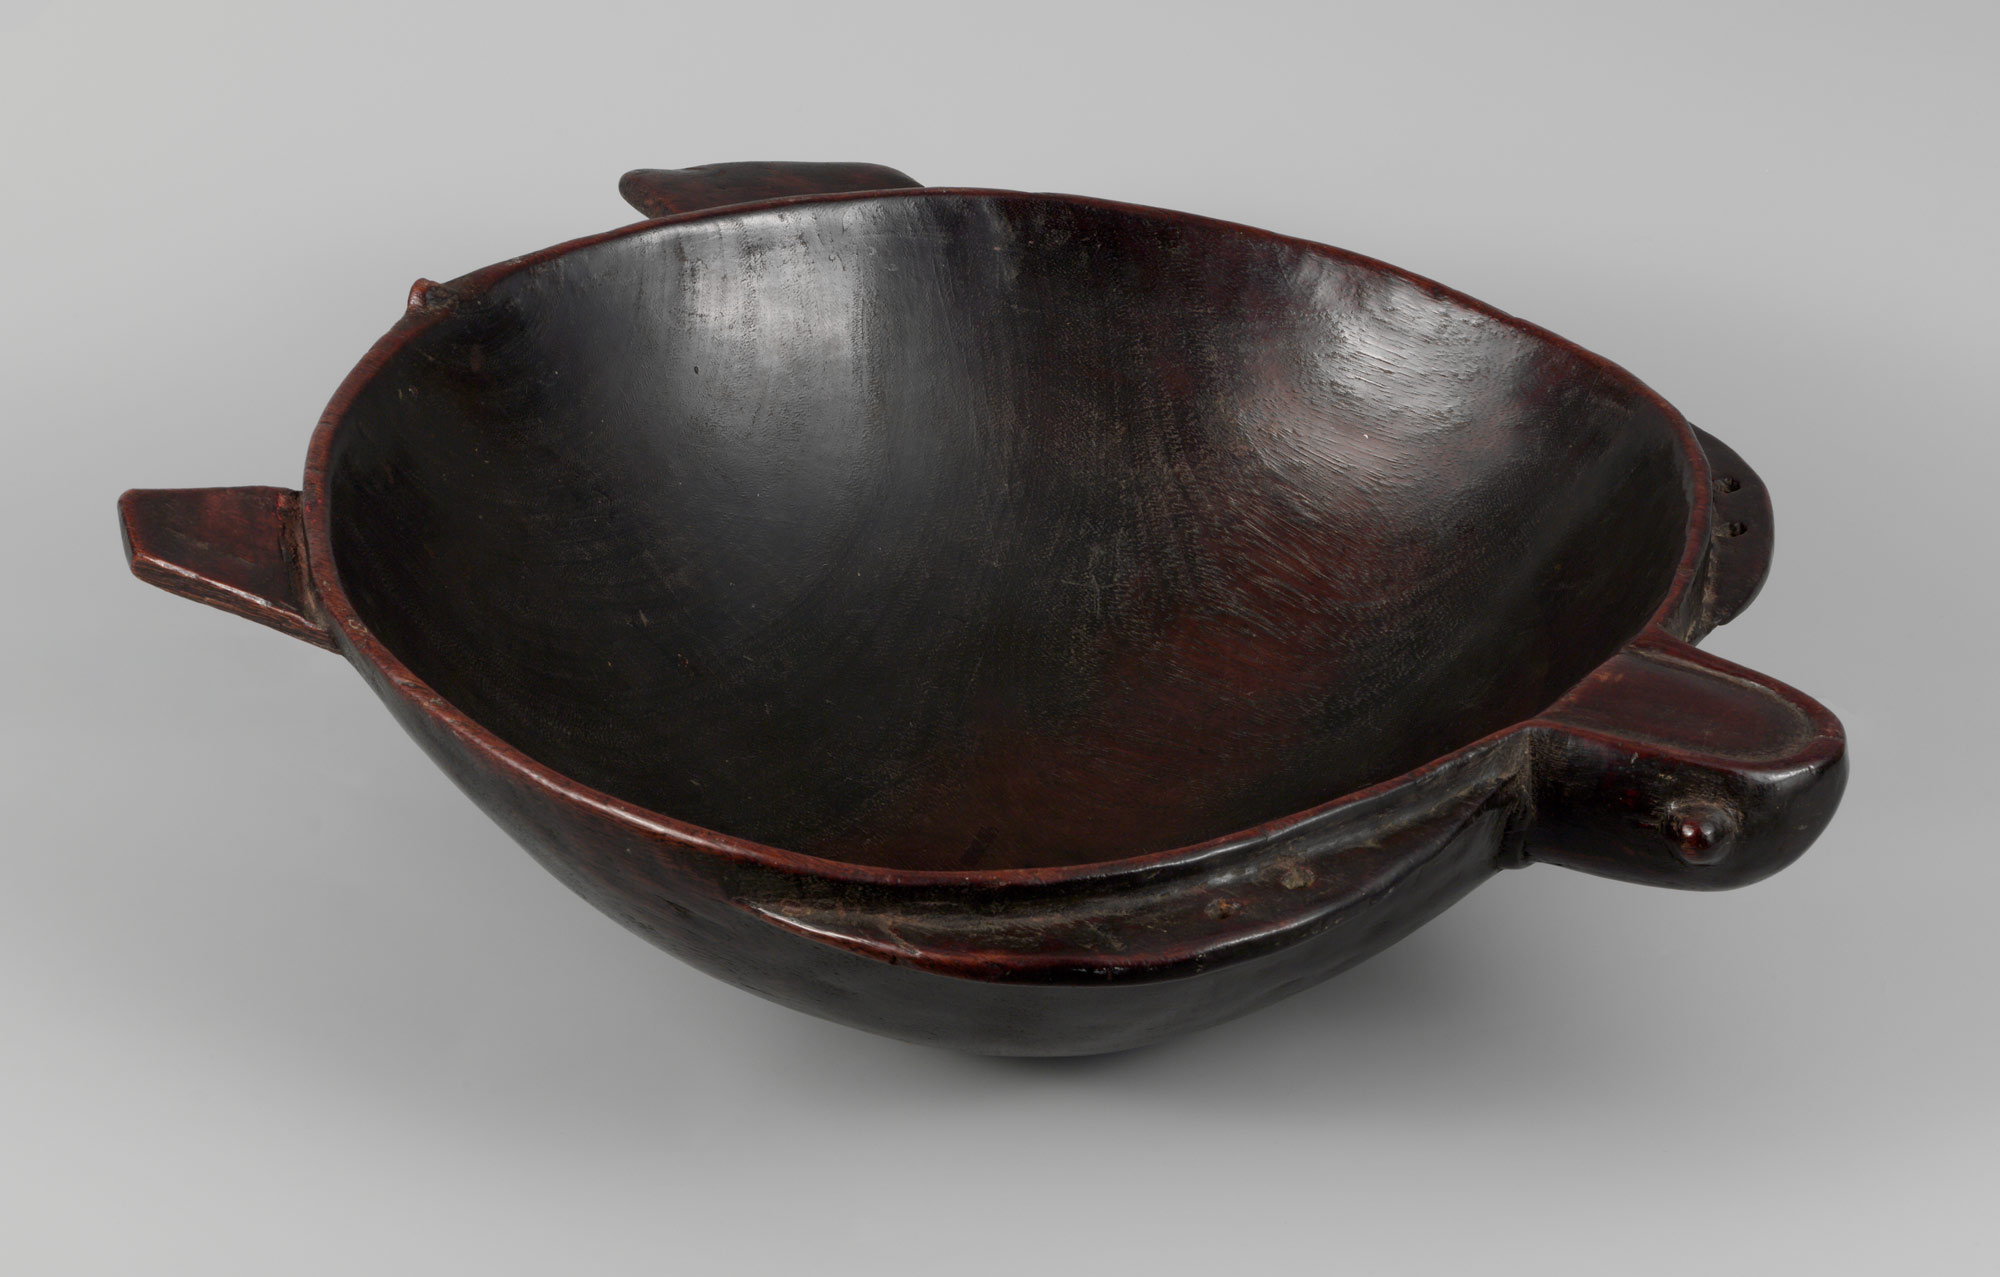 Object Type: Inspiration Dish Indigenous Name: Darivonu Location: Fiji Date: Early 19th Century Materials: Wood Dimensions: W. 22 x L. 18 7/8 in. Institute: The Metropolitan Museum of Art, 1979.206.1579